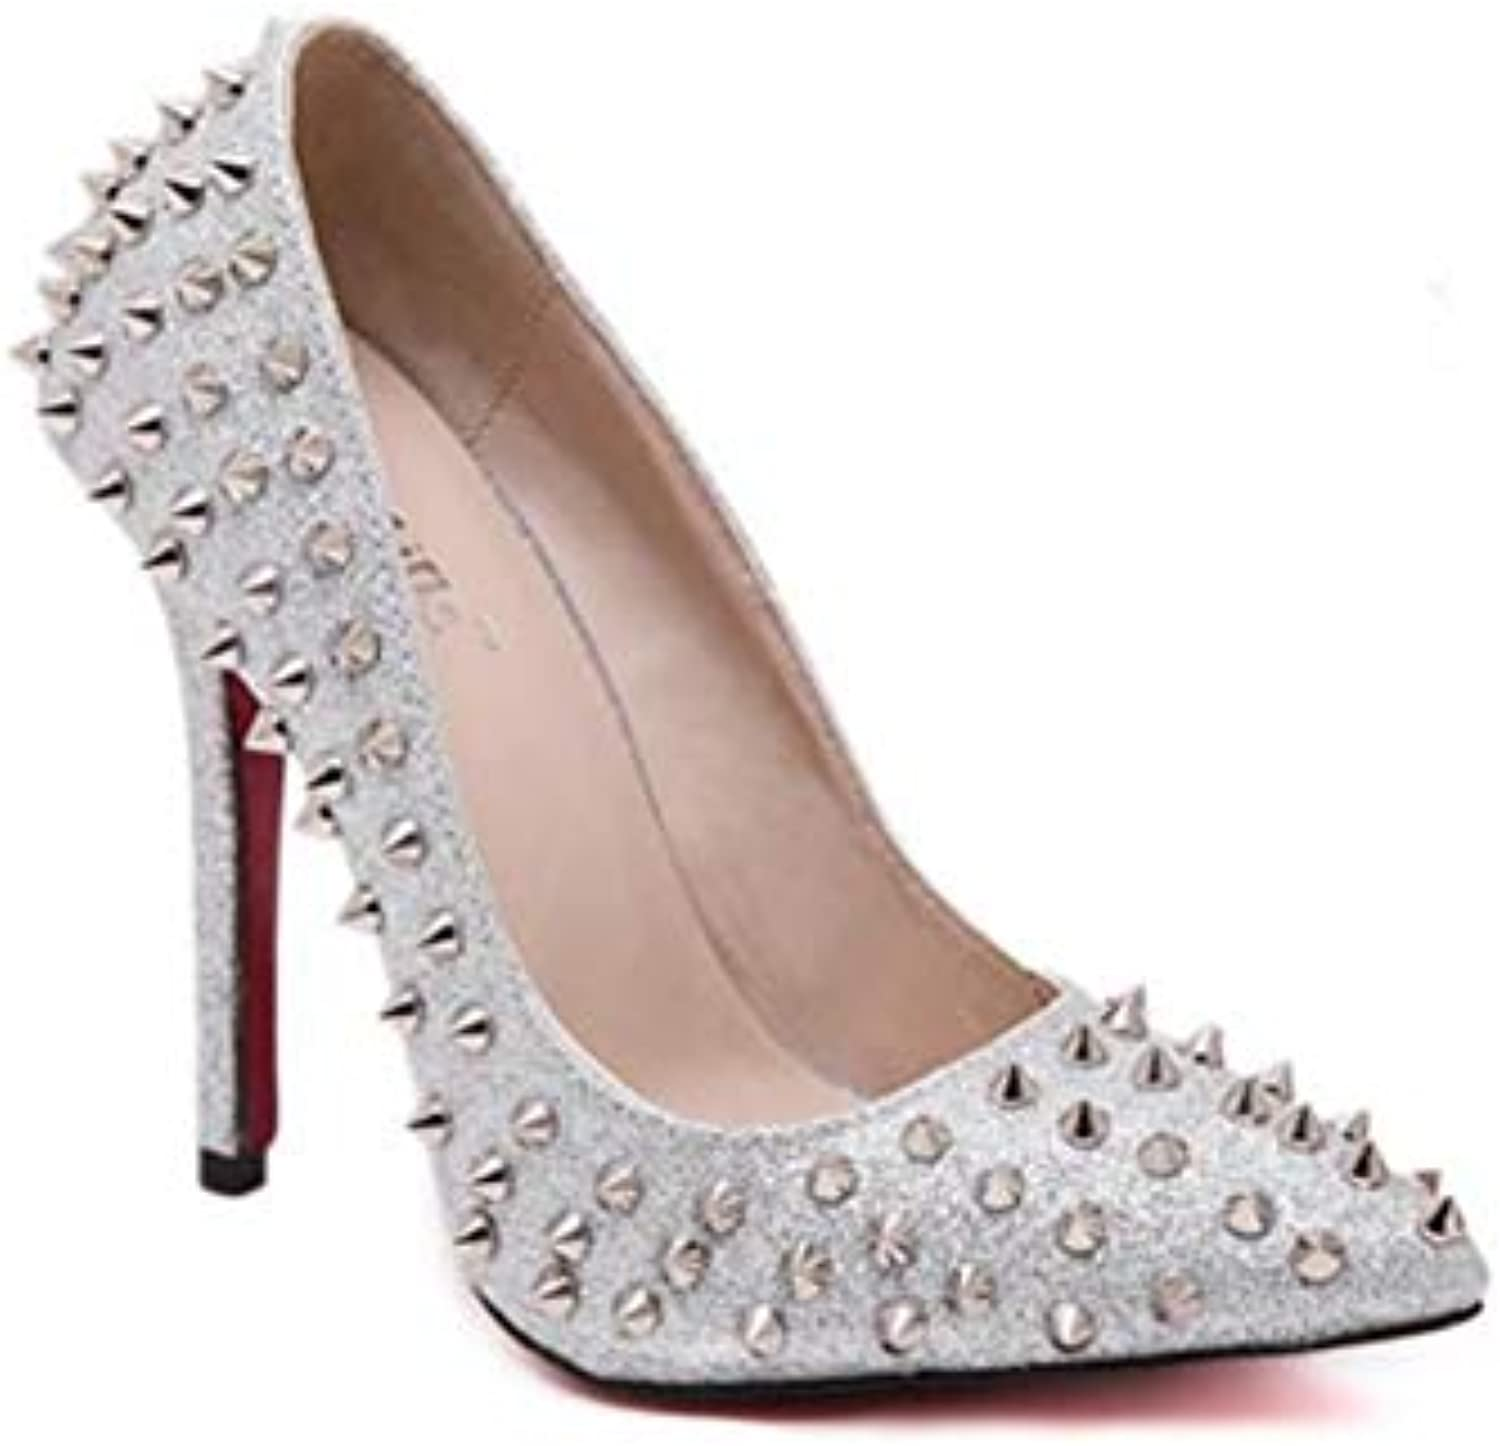 JQfashion Rivets for Ladies'High Heels with High Pointed and Thin Heels